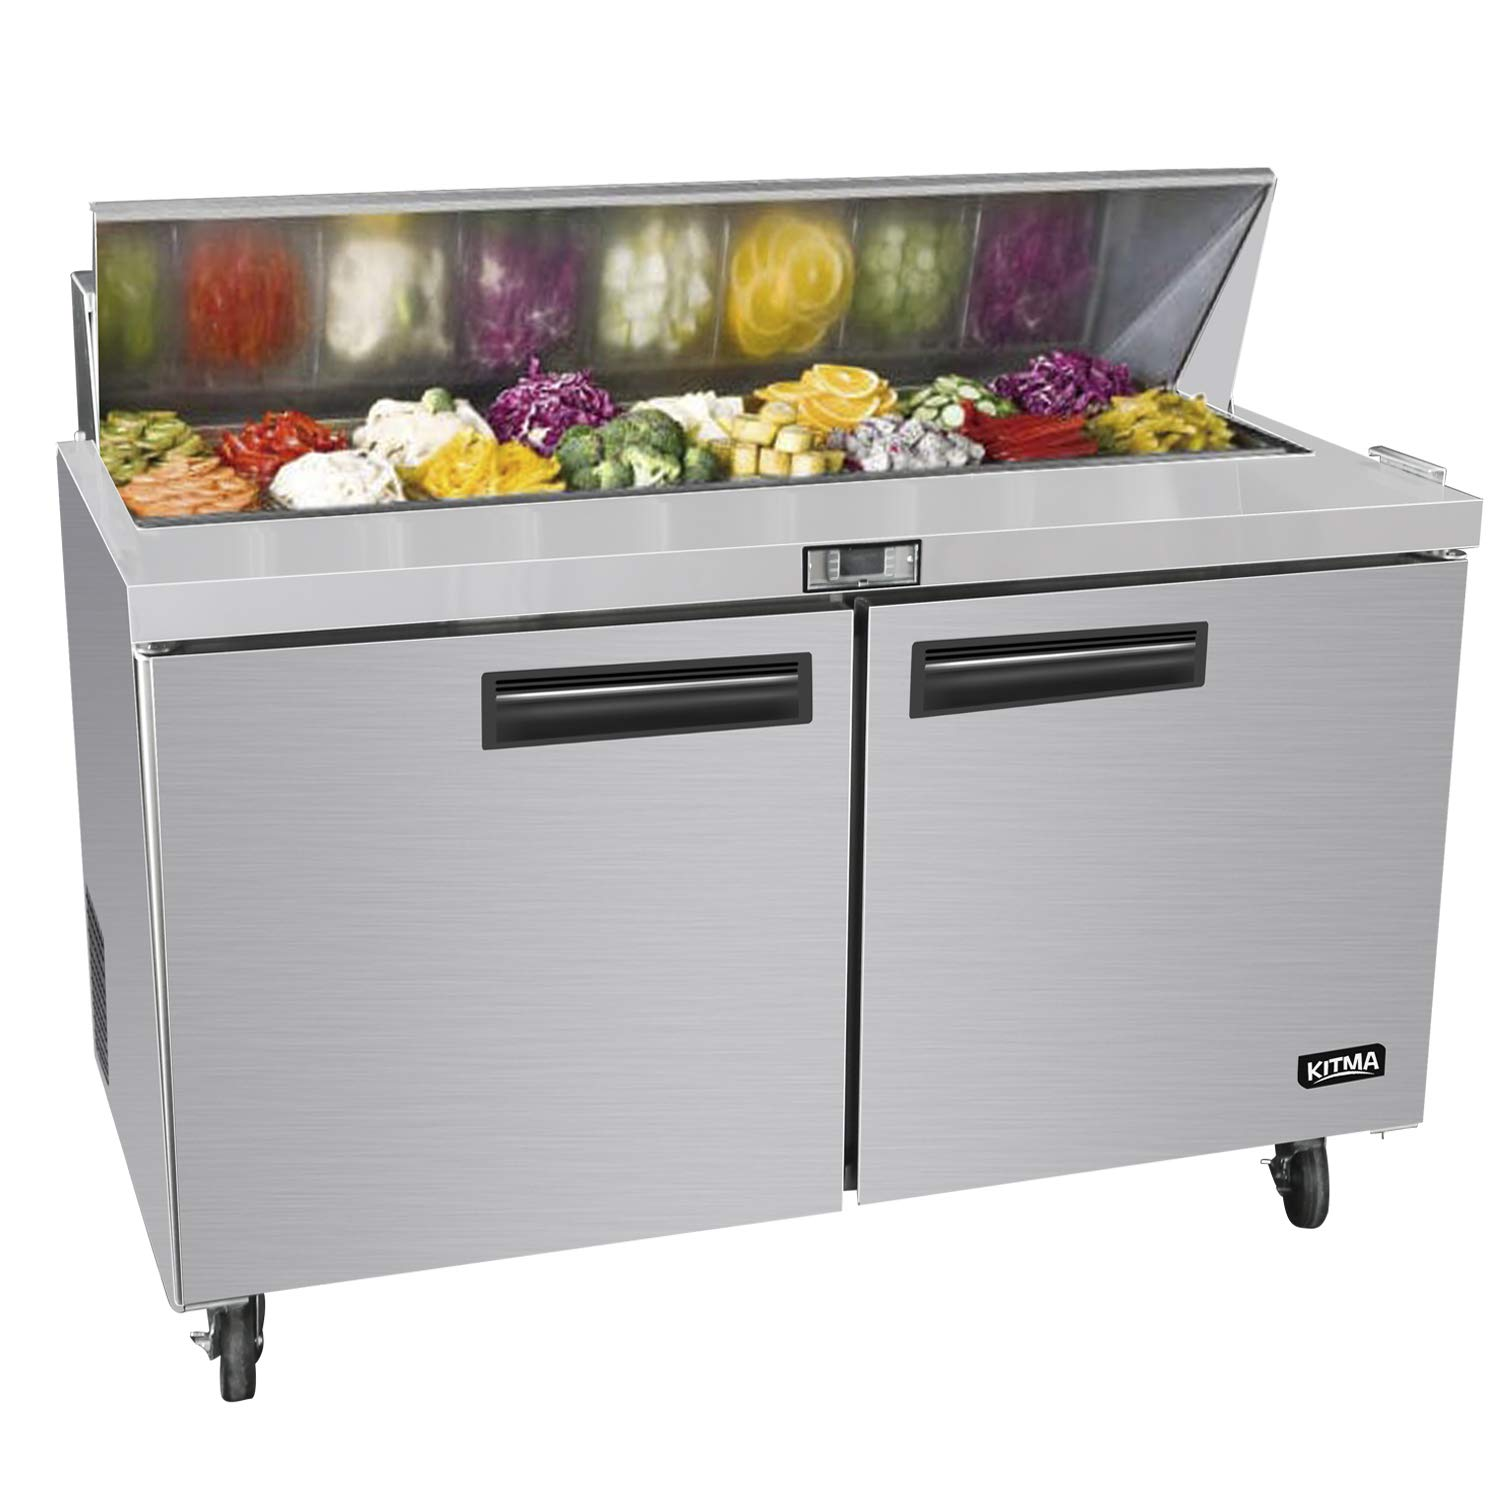 60 Inches Sandwich Salad Prep Table Refrigerator - KITMA 18.2 Cu. Ft 2 Door Food Prep Station Table with Cutting Board and 16 Pans, 33 °F - 38°F by KITMA